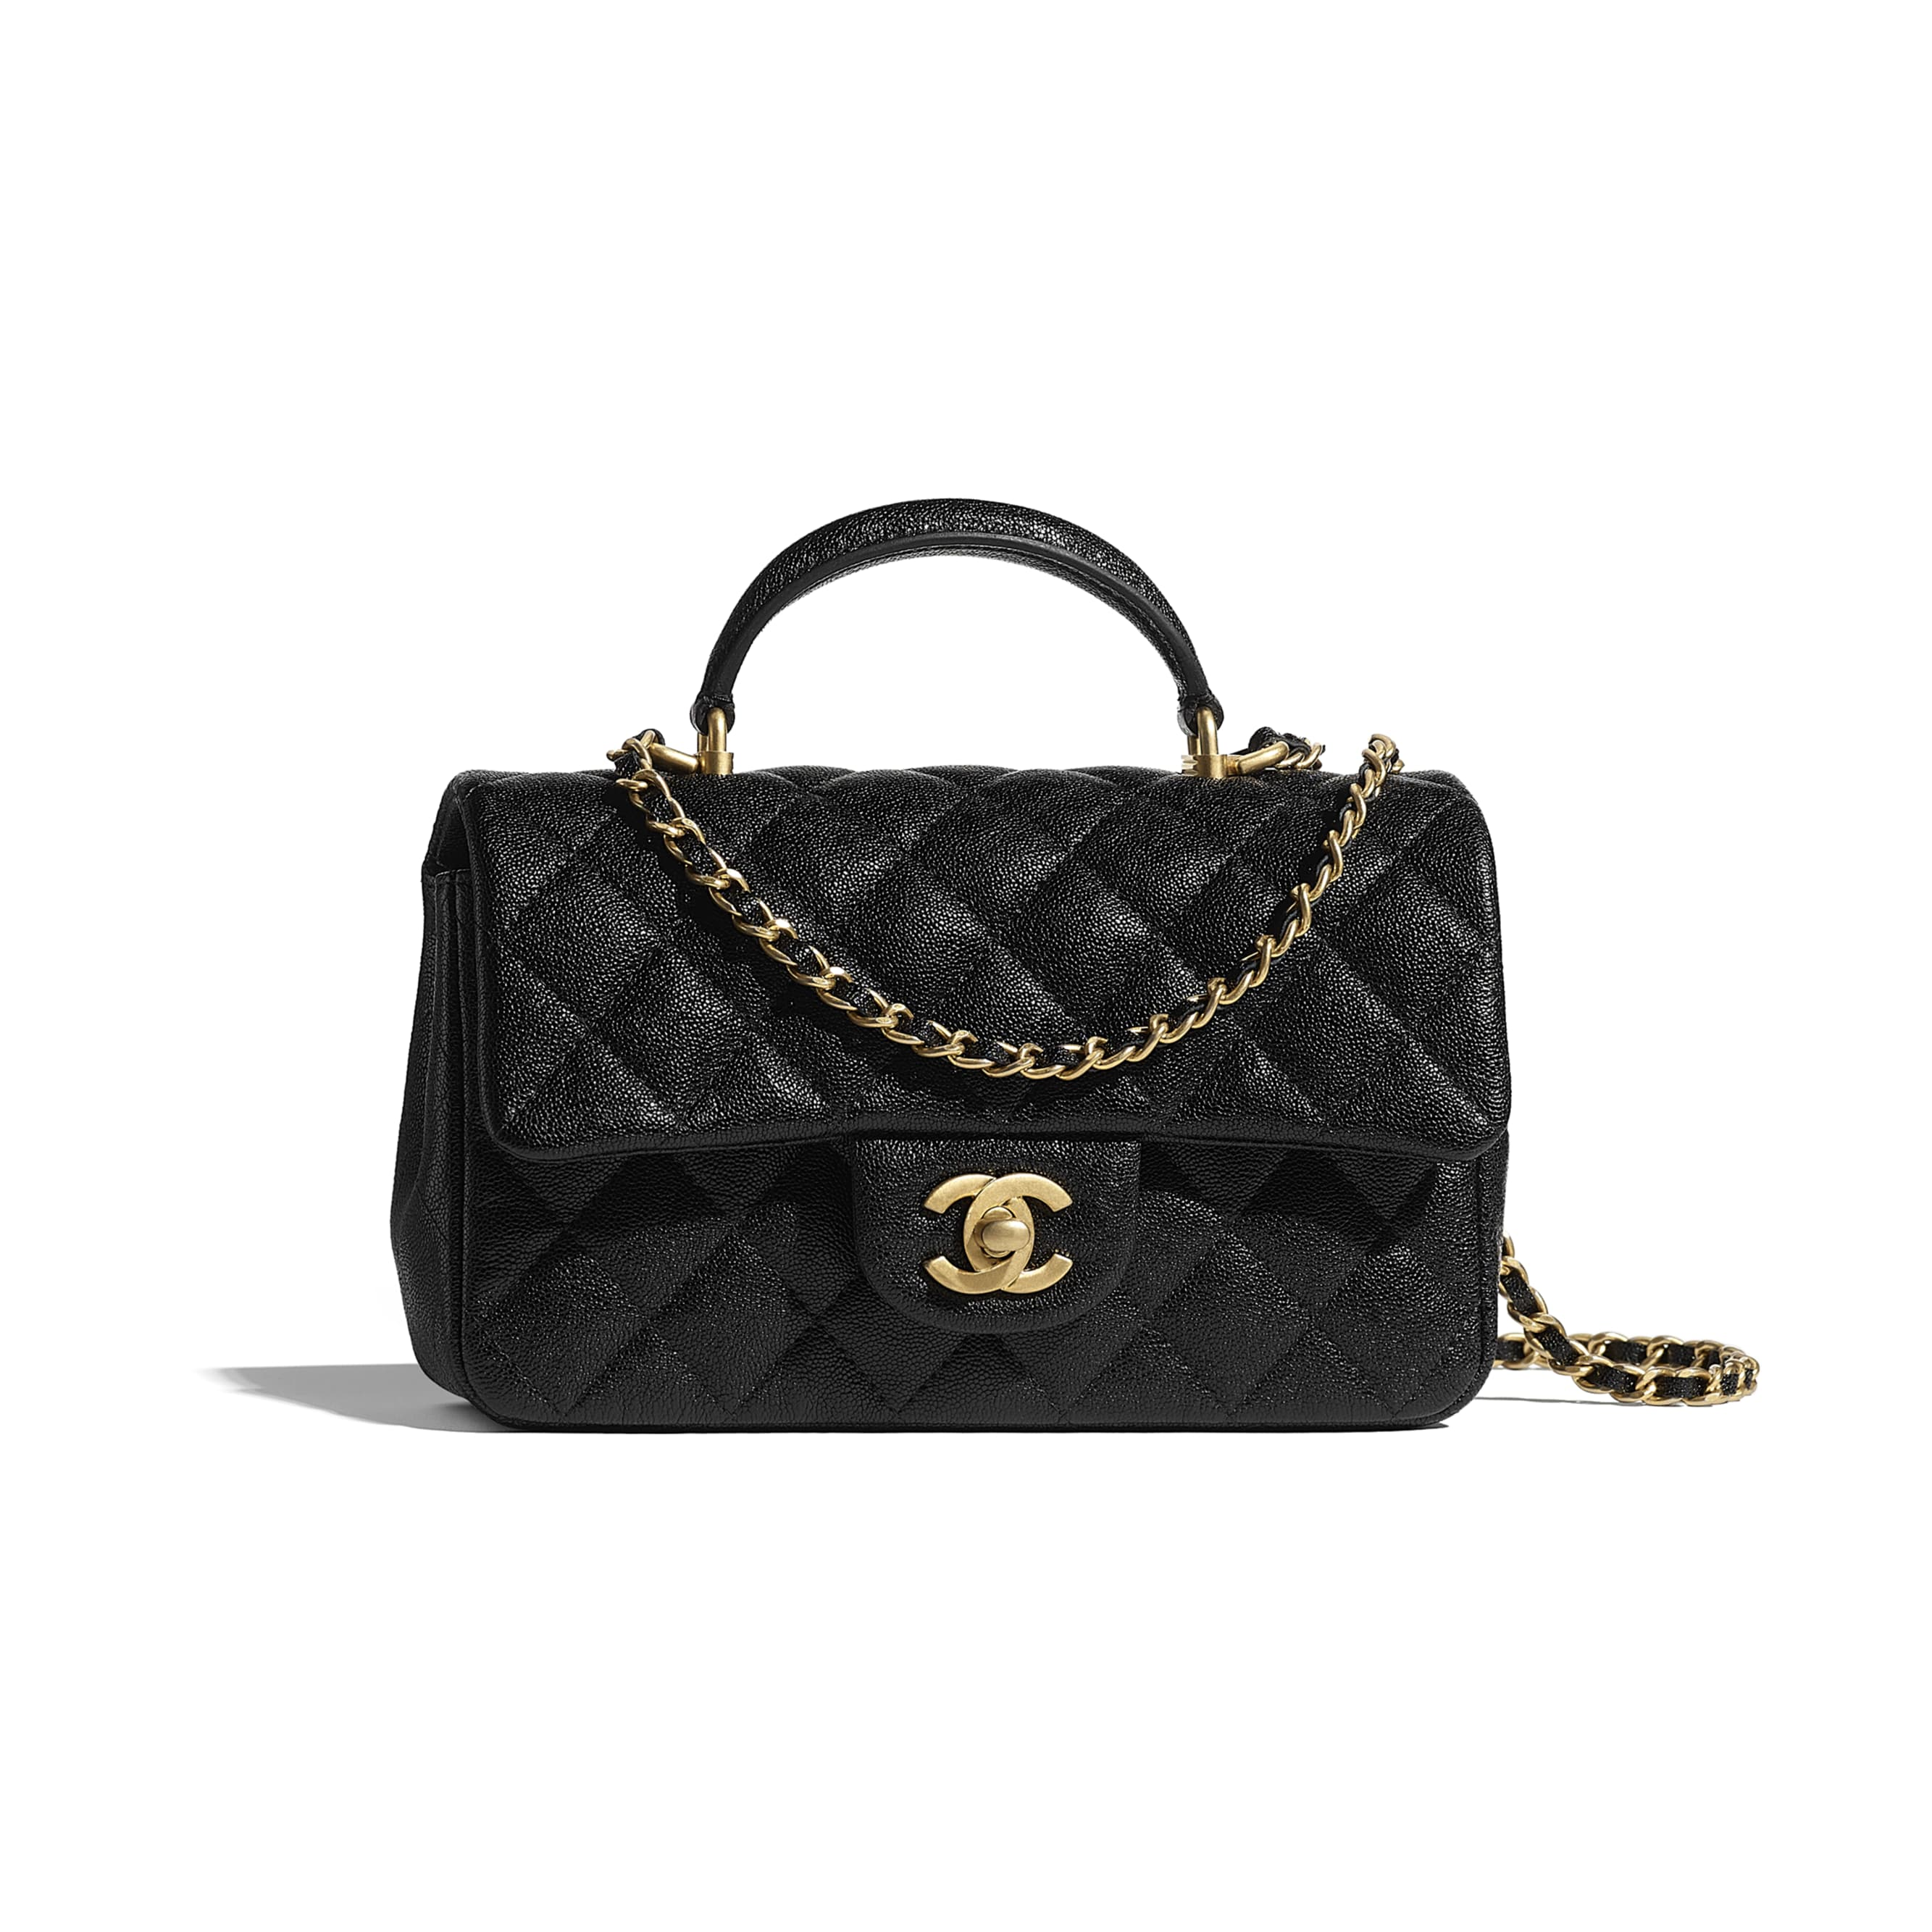 Mini Flap Bag with Top Handle - Black - Grained Calfskin & Gold-Tone Metal - CHANEL - Default view - see standard sized version